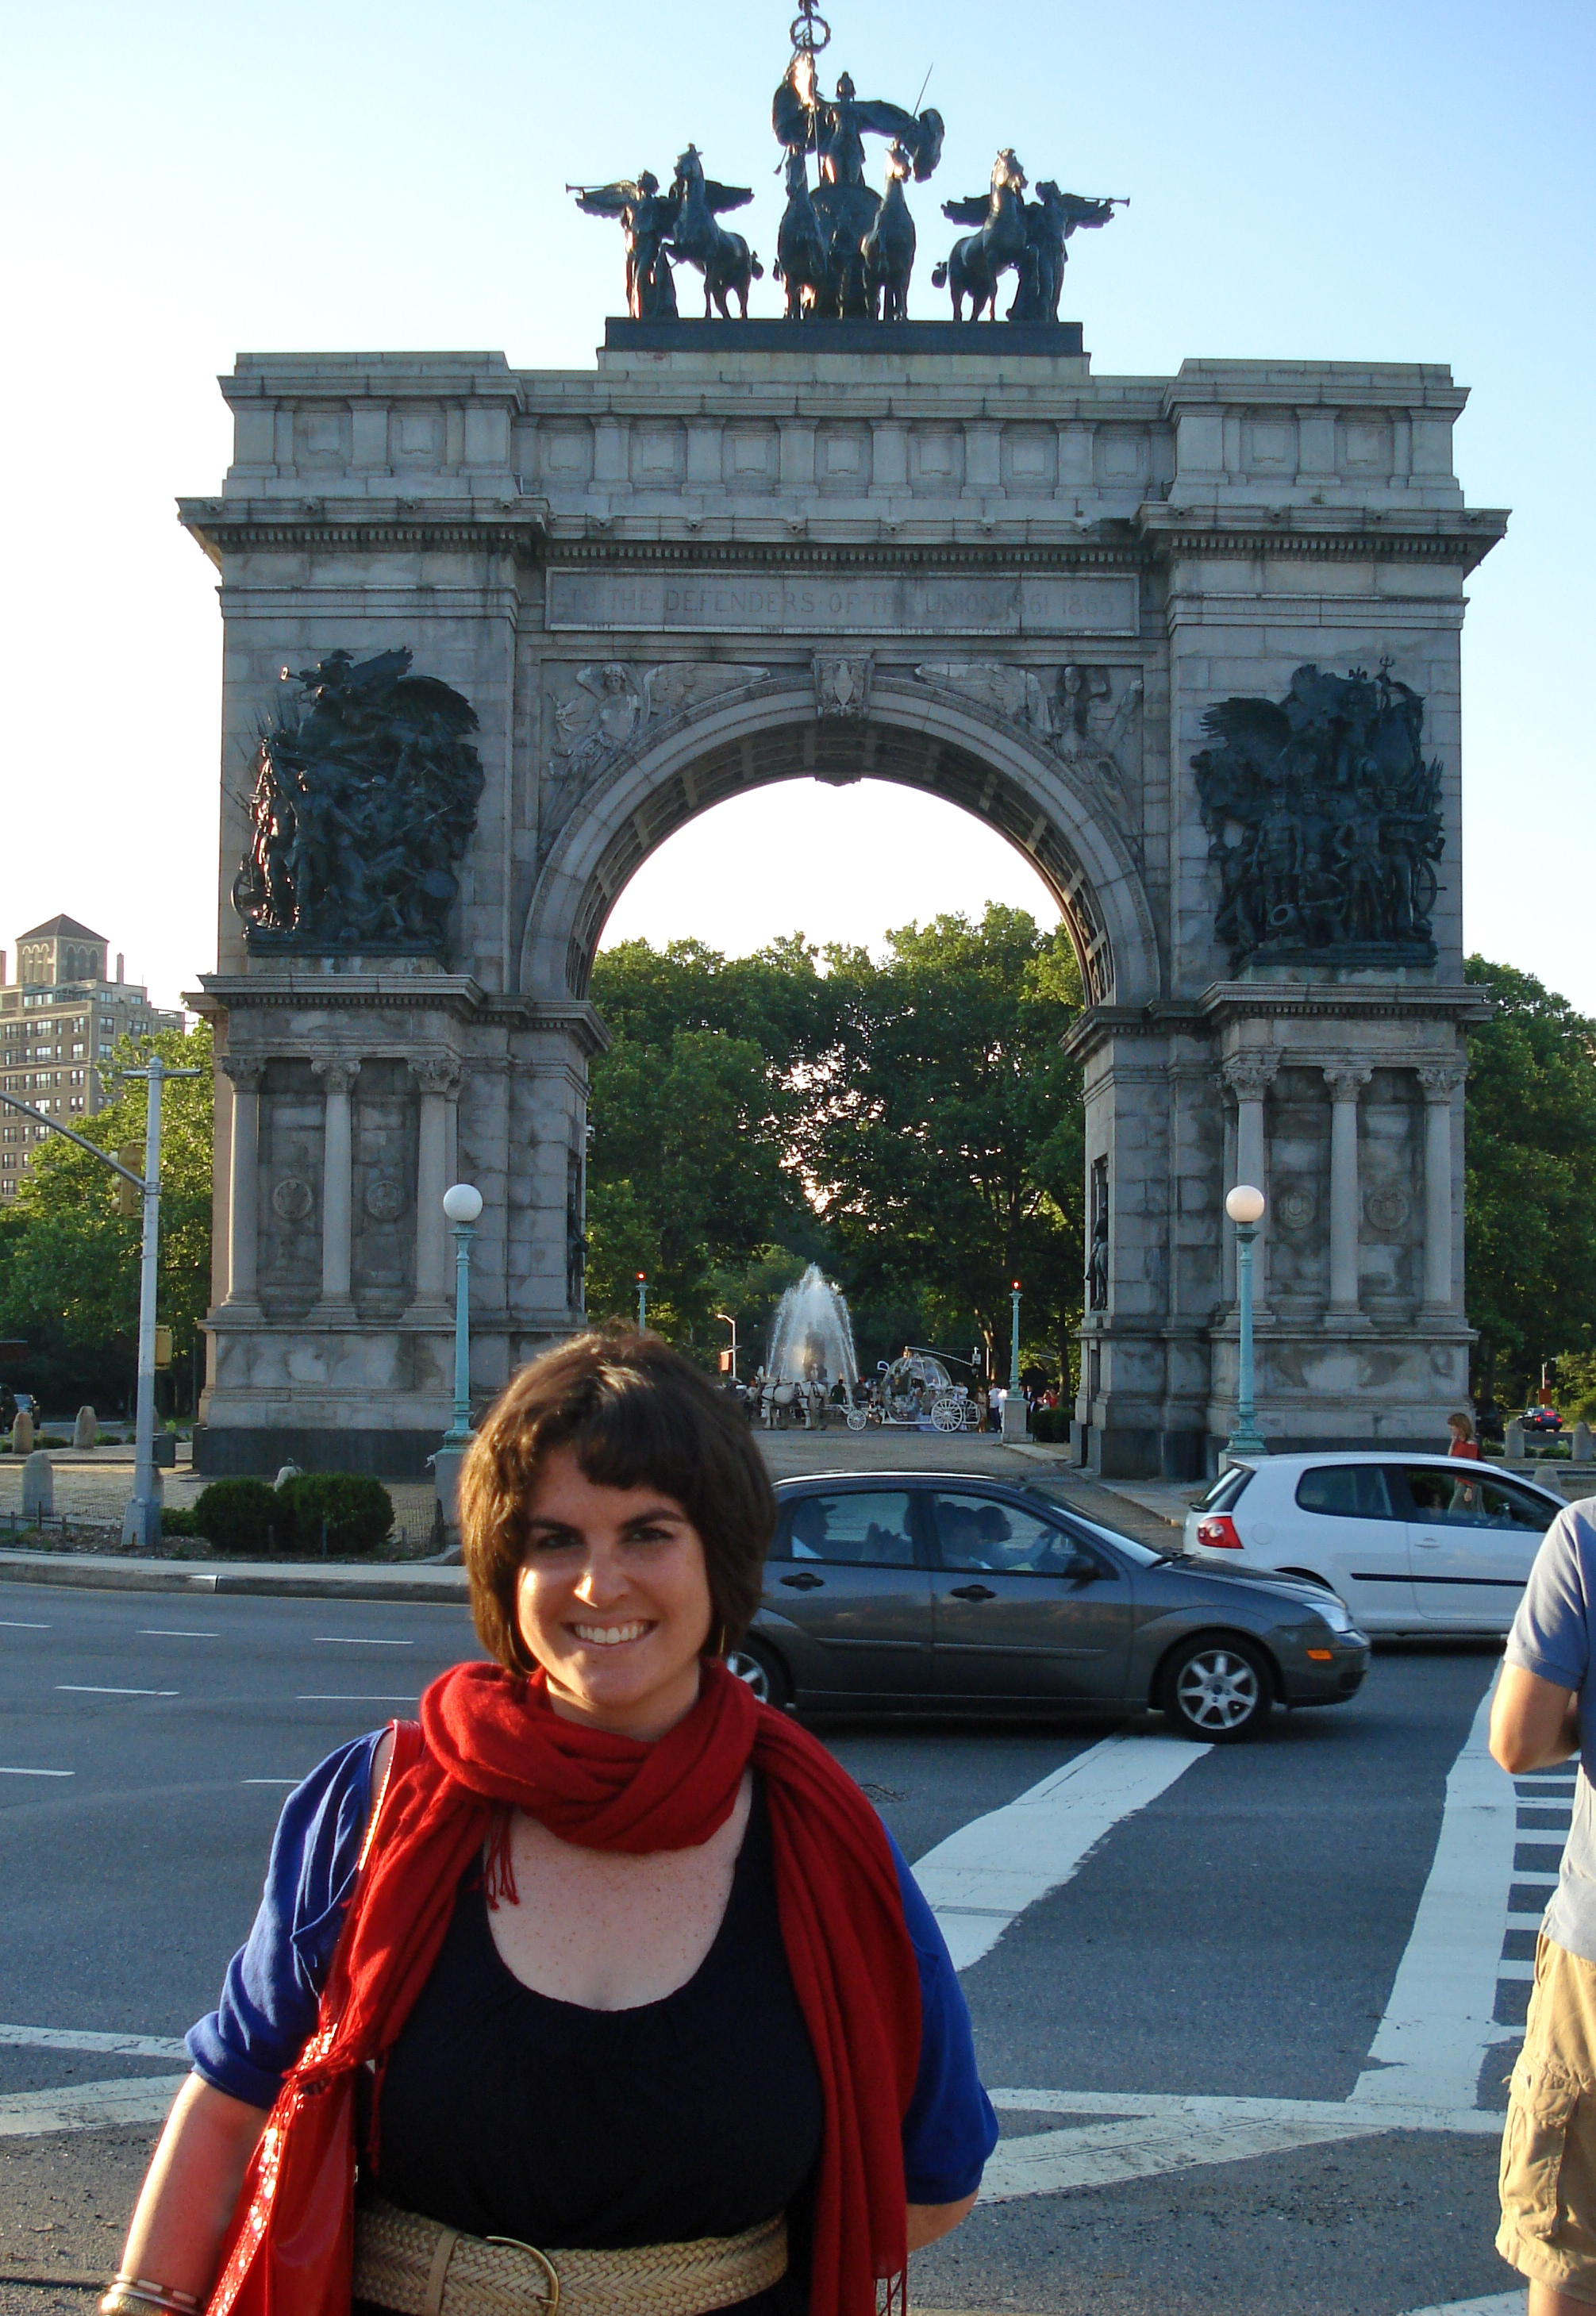 In front of the arch at Grand Army Plaza, heading into the park, just to verify that I was in New York City and in Brooklyn.